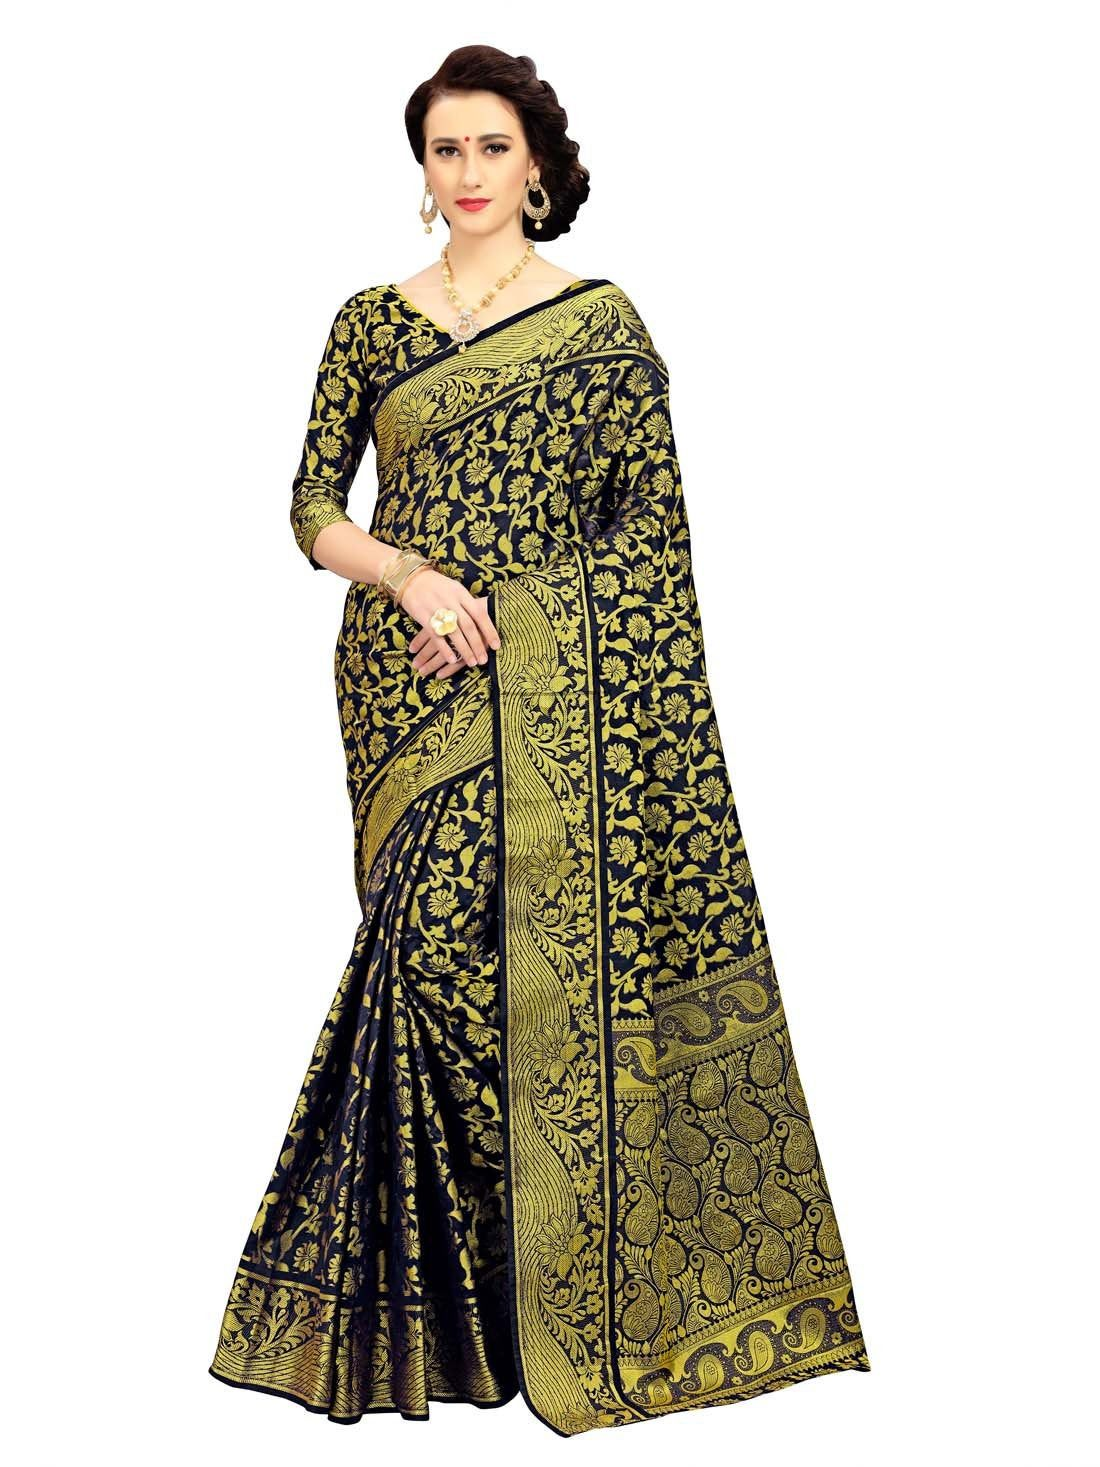 Photo of Banarasi Art Silk Saree With Heavy Zari Work Pallu & Heavy Rich Work Blouse For Modern Women /saree/blouse/bridal saree/wedding saree/sari